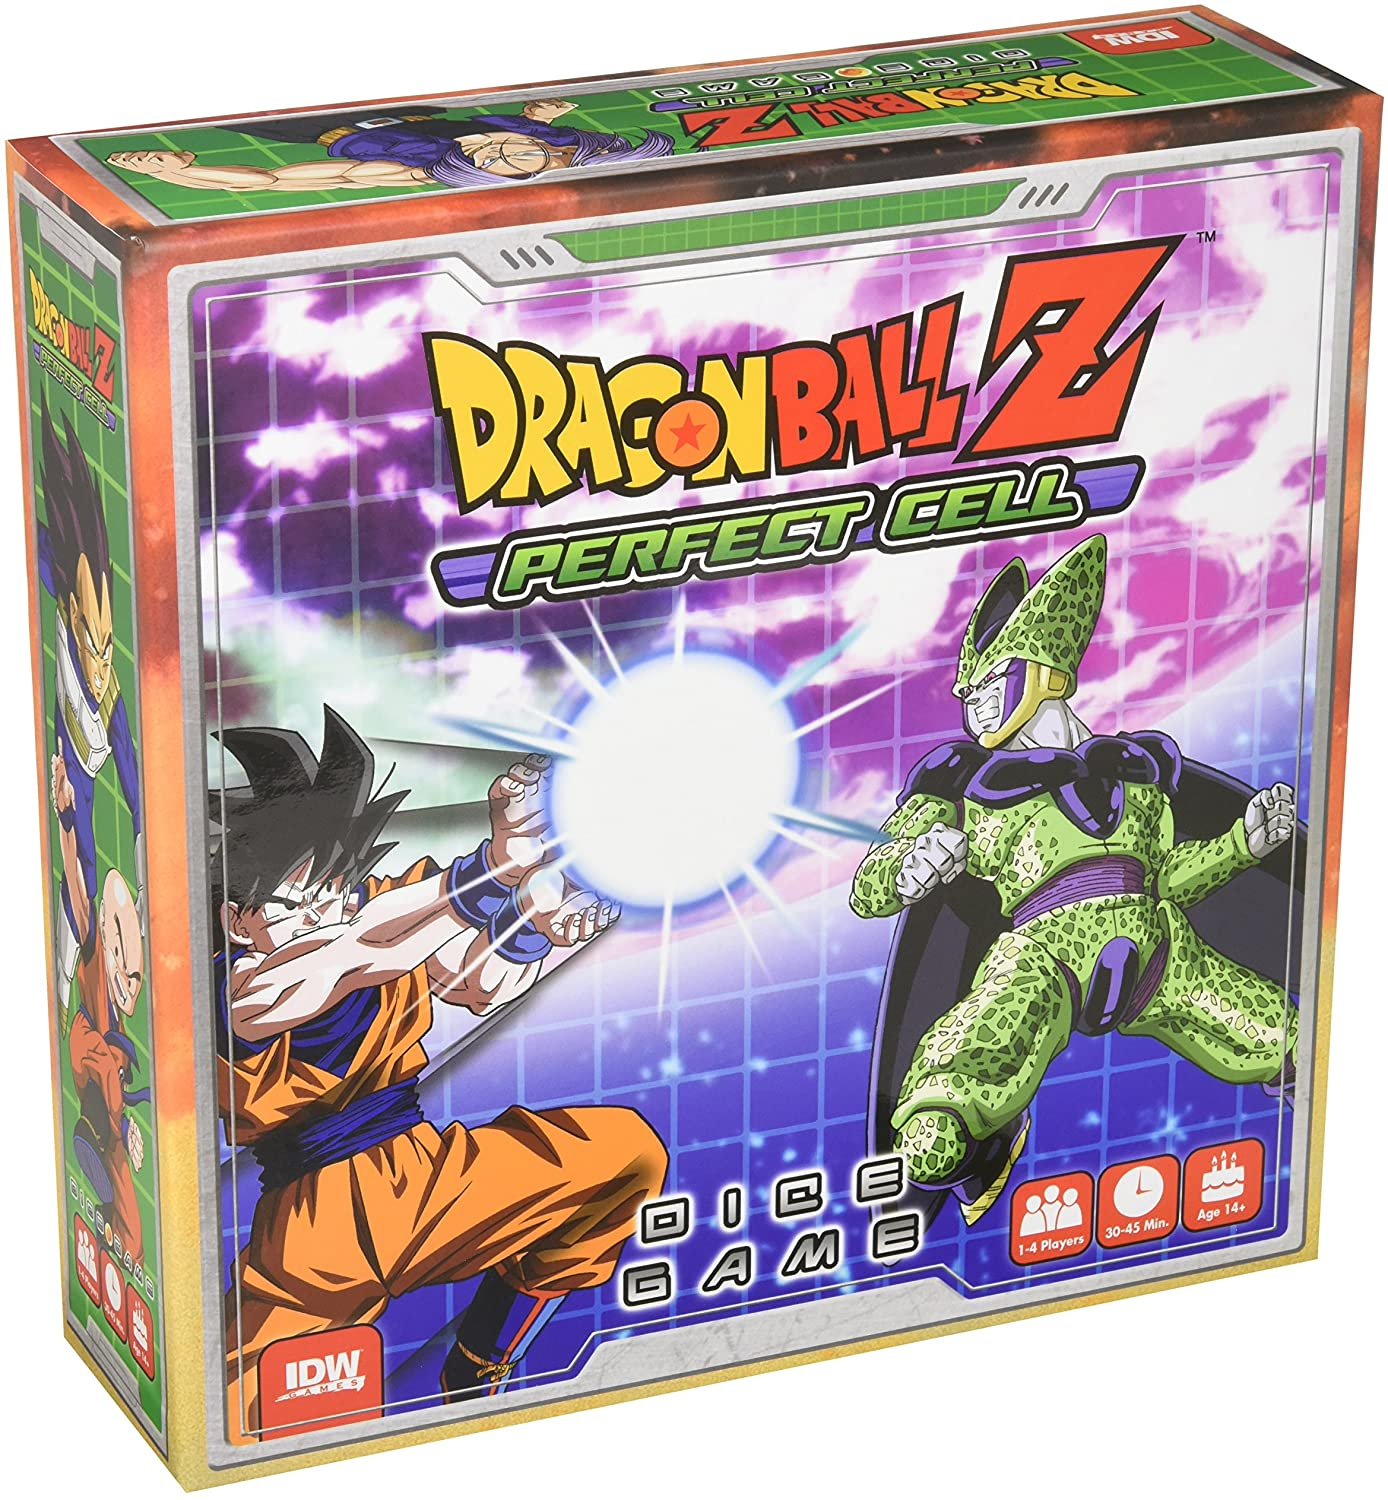 Dragon Ball Z Perfect Cell Collectible Dice Game Dice Game